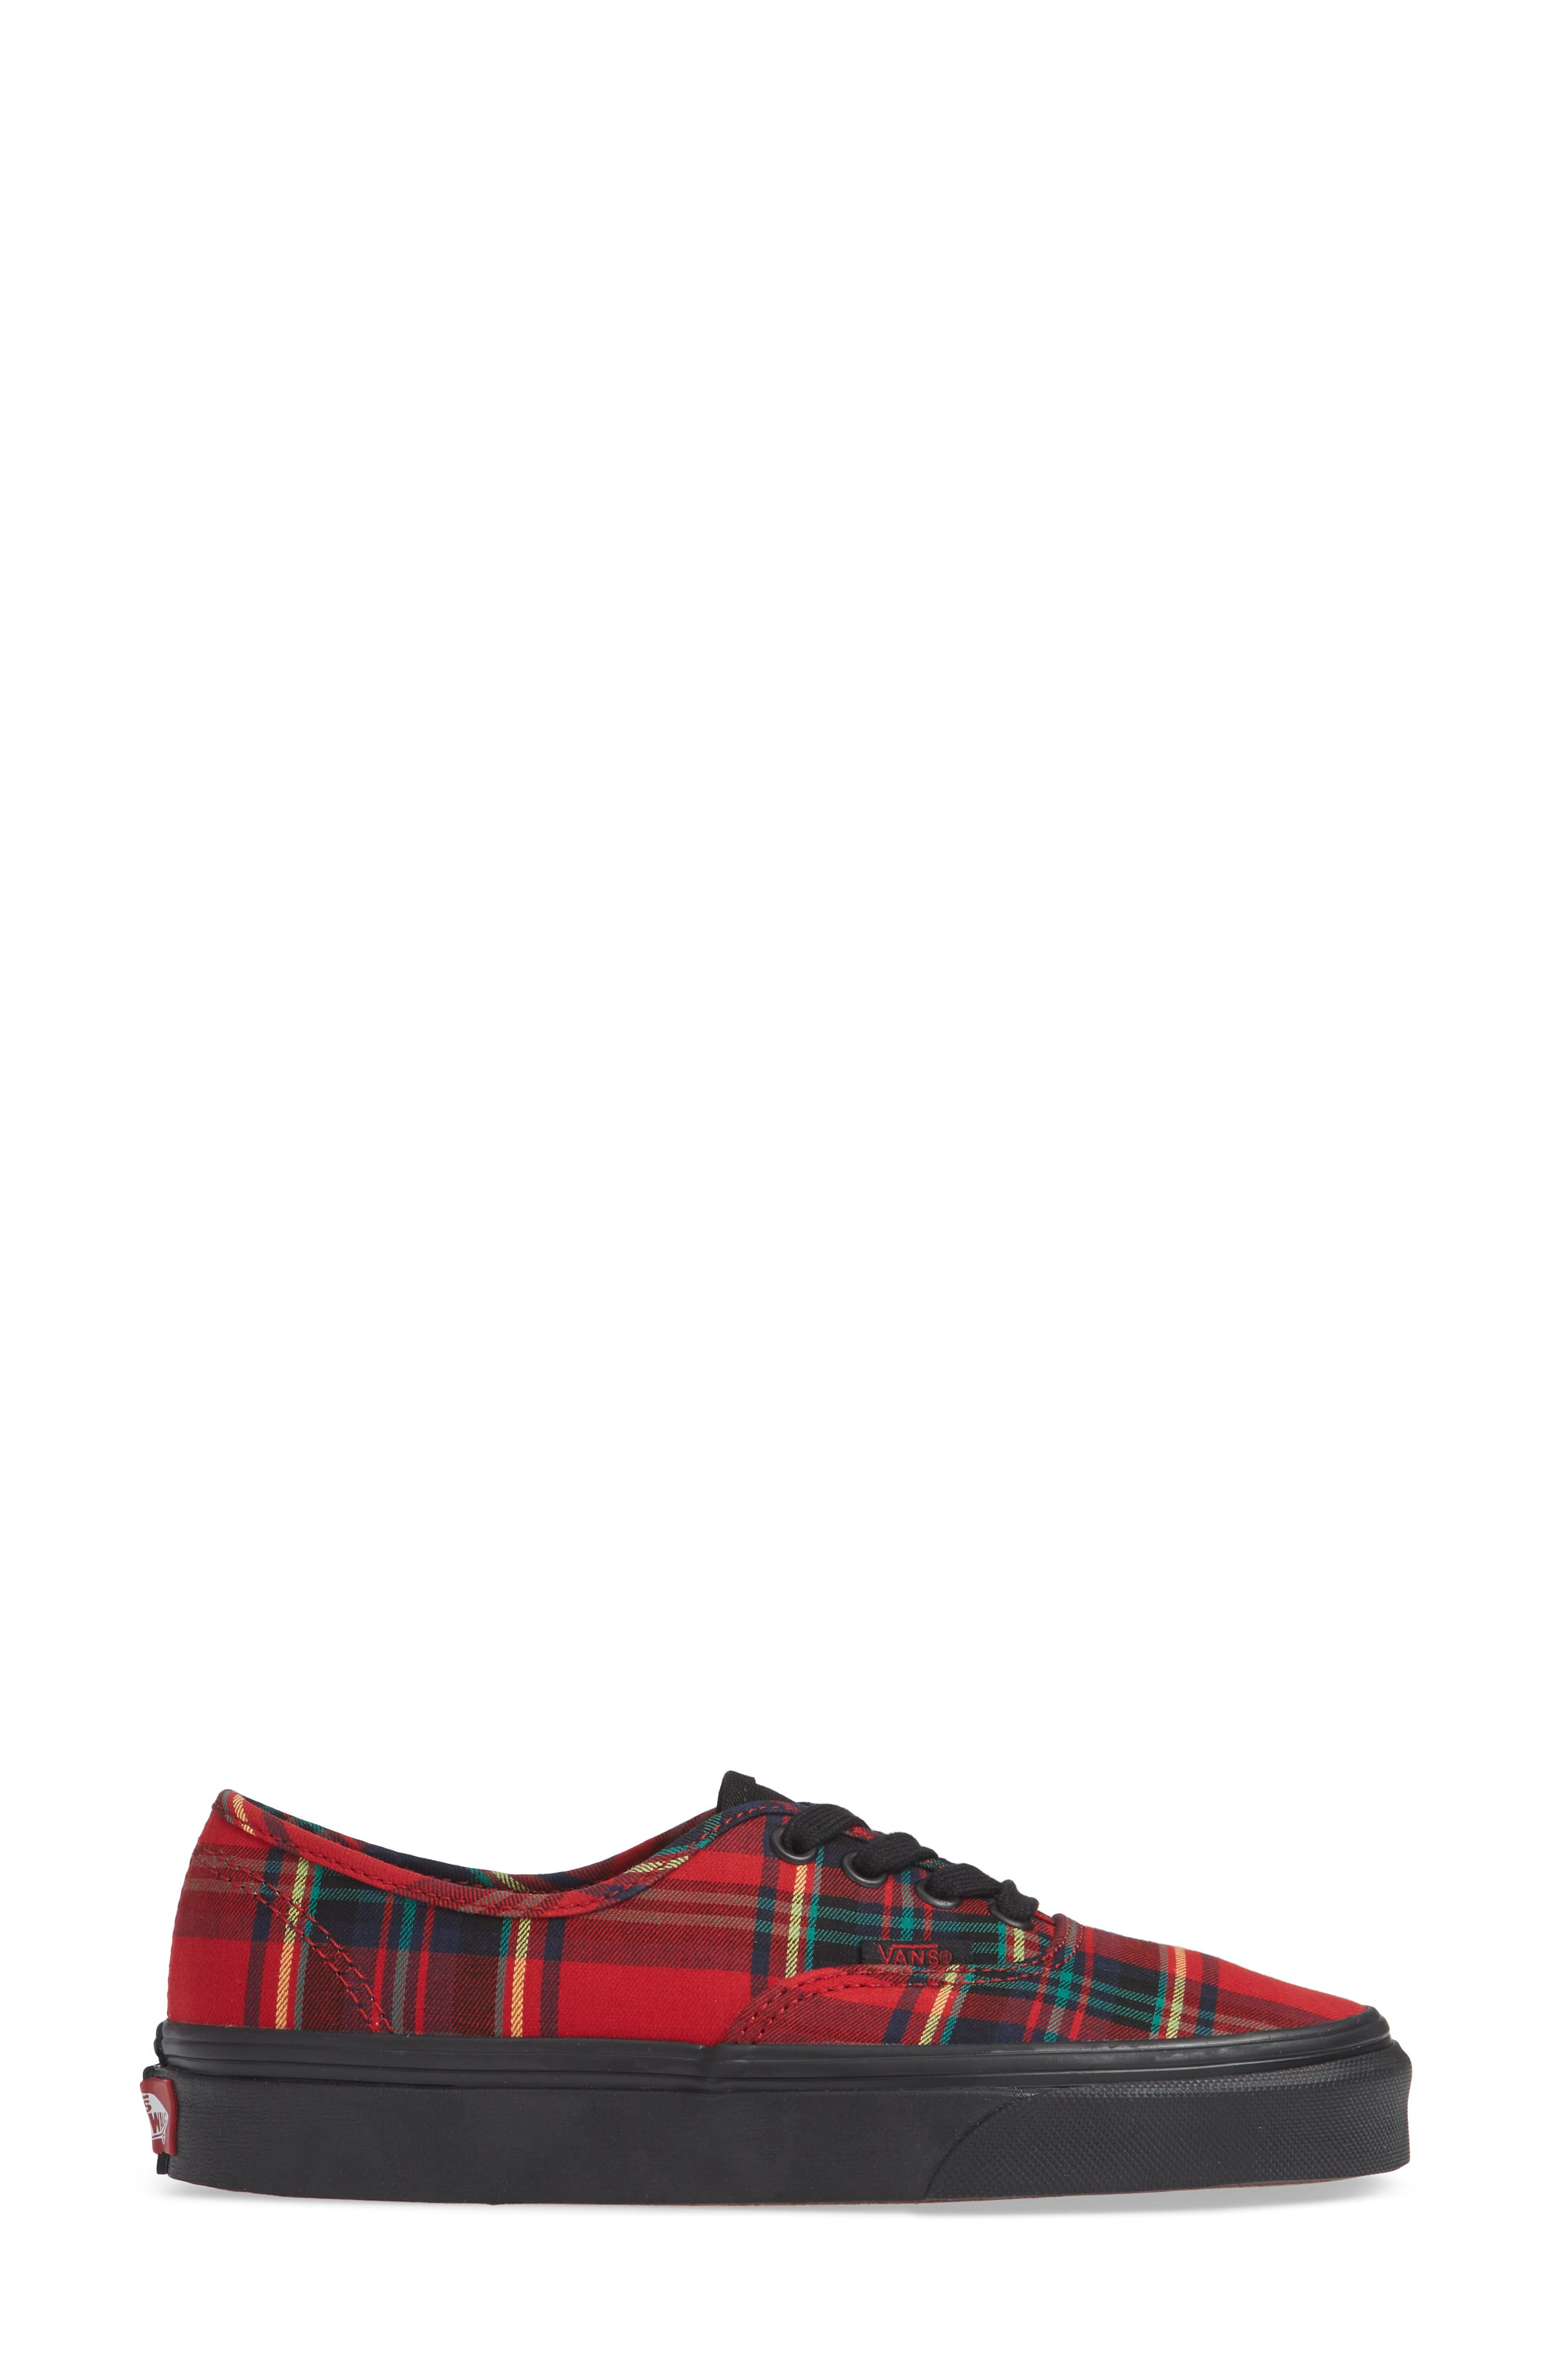 'Authentic' Sneaker,                             Alternate thumbnail 5, color,                             Plaid Mix Red